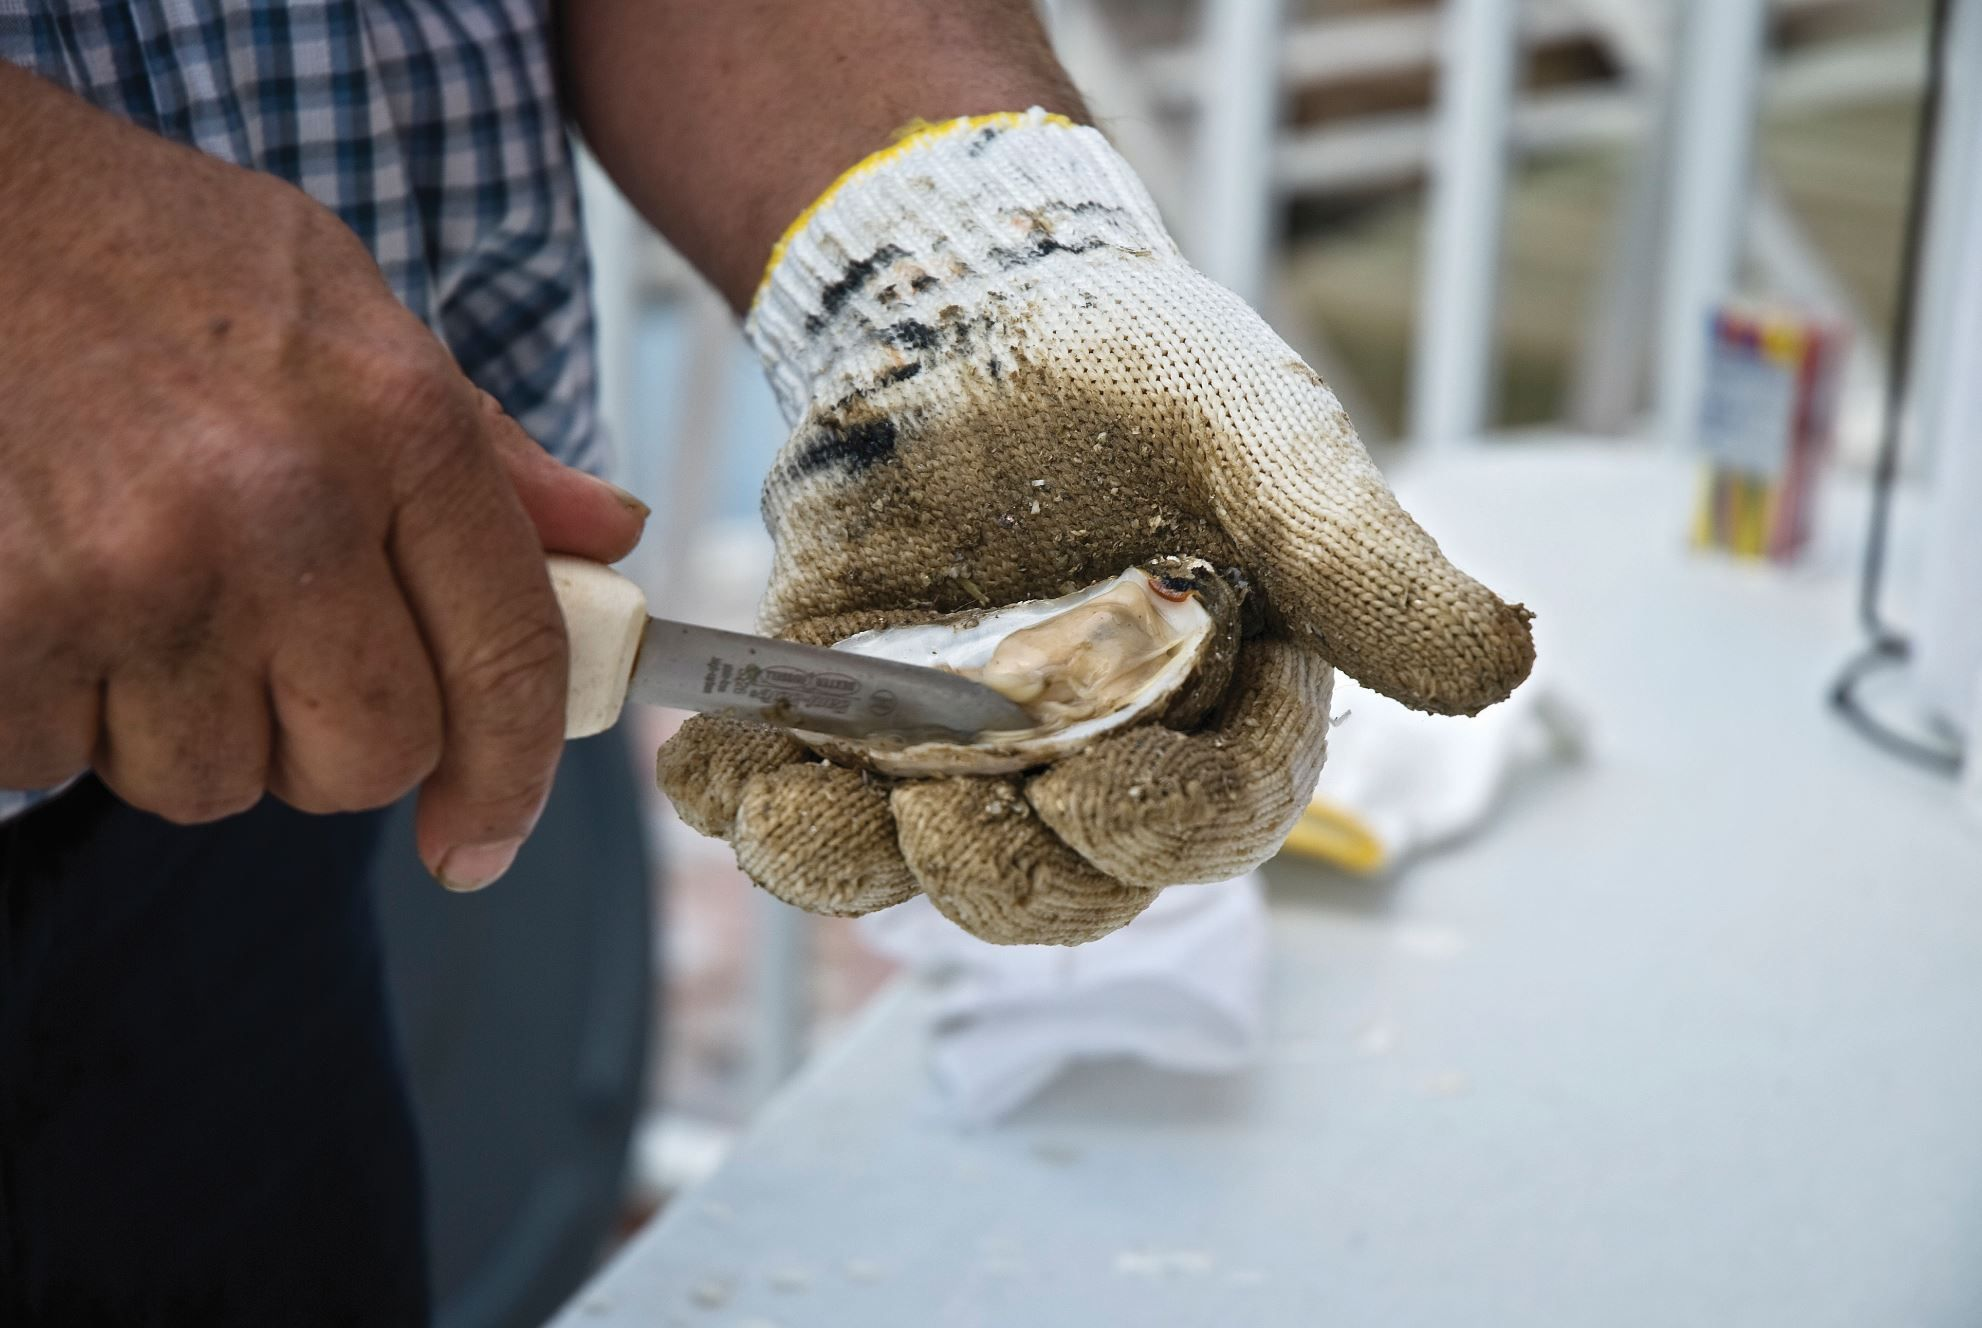 Oyster shucking in Florida